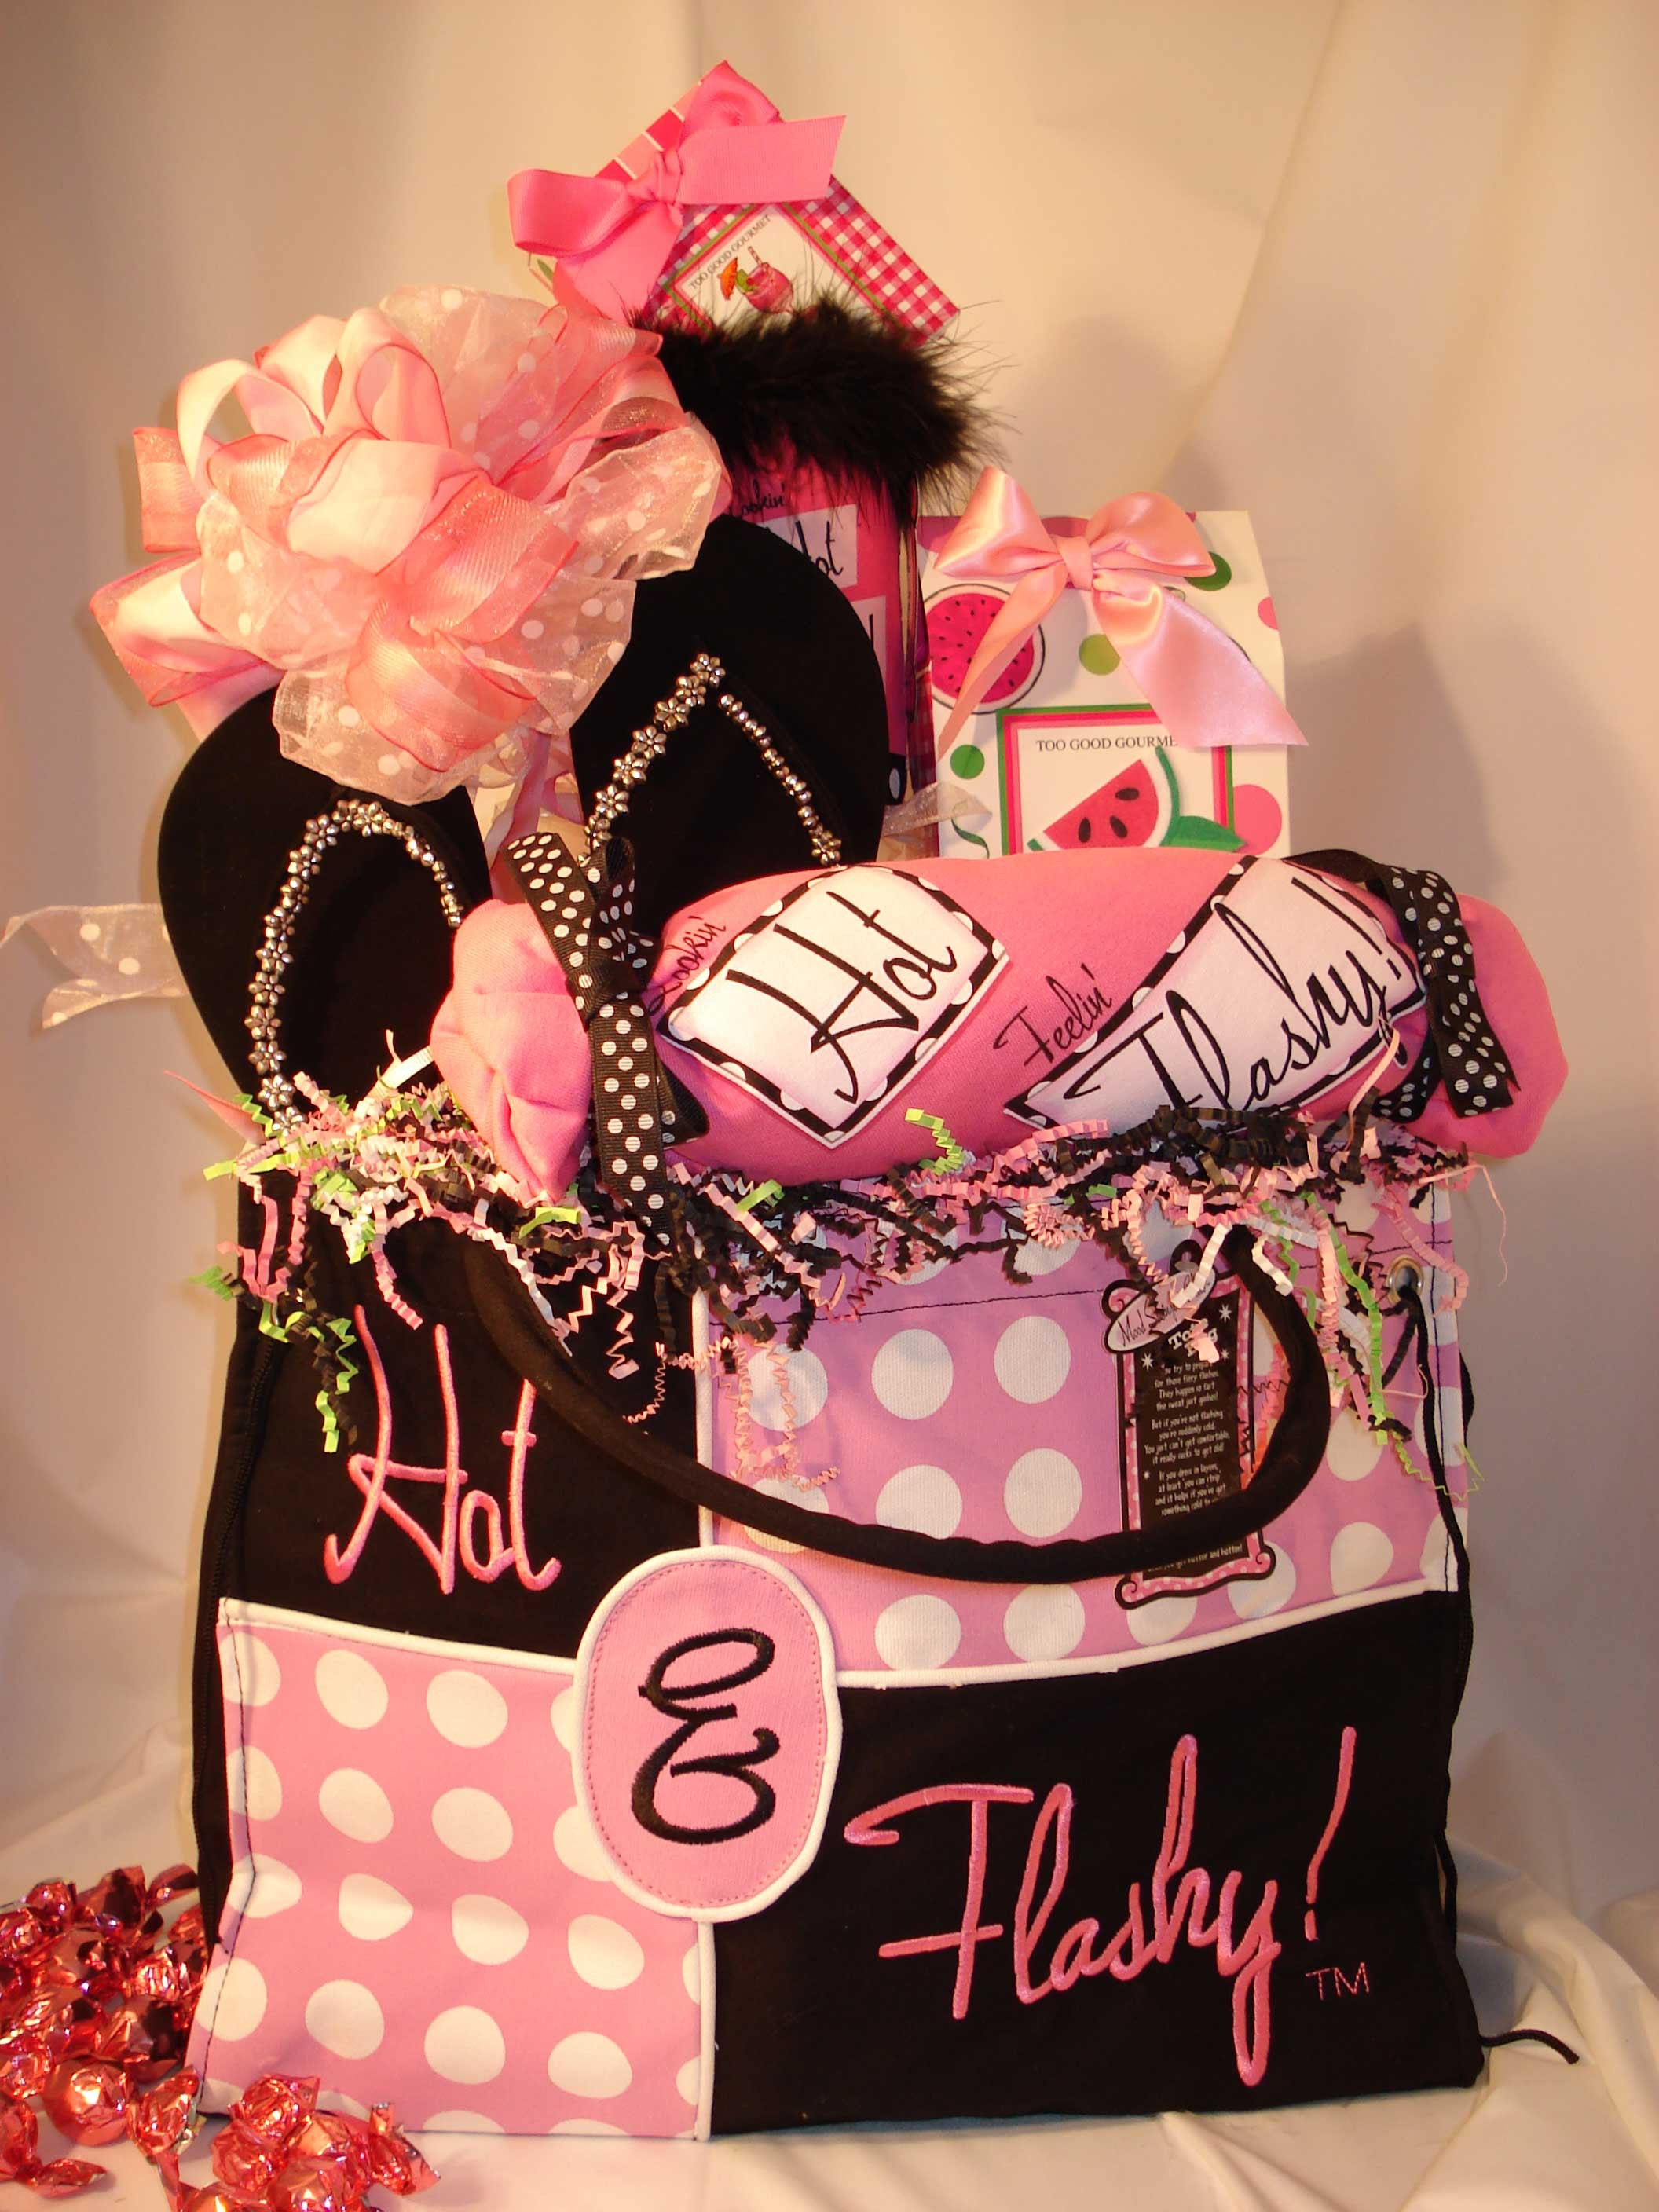 Best ideas about Cute Wedding Gift Ideas . Save or Pin 13 Gift Basket Ideas For Your Great Gifts Women wellness Now.